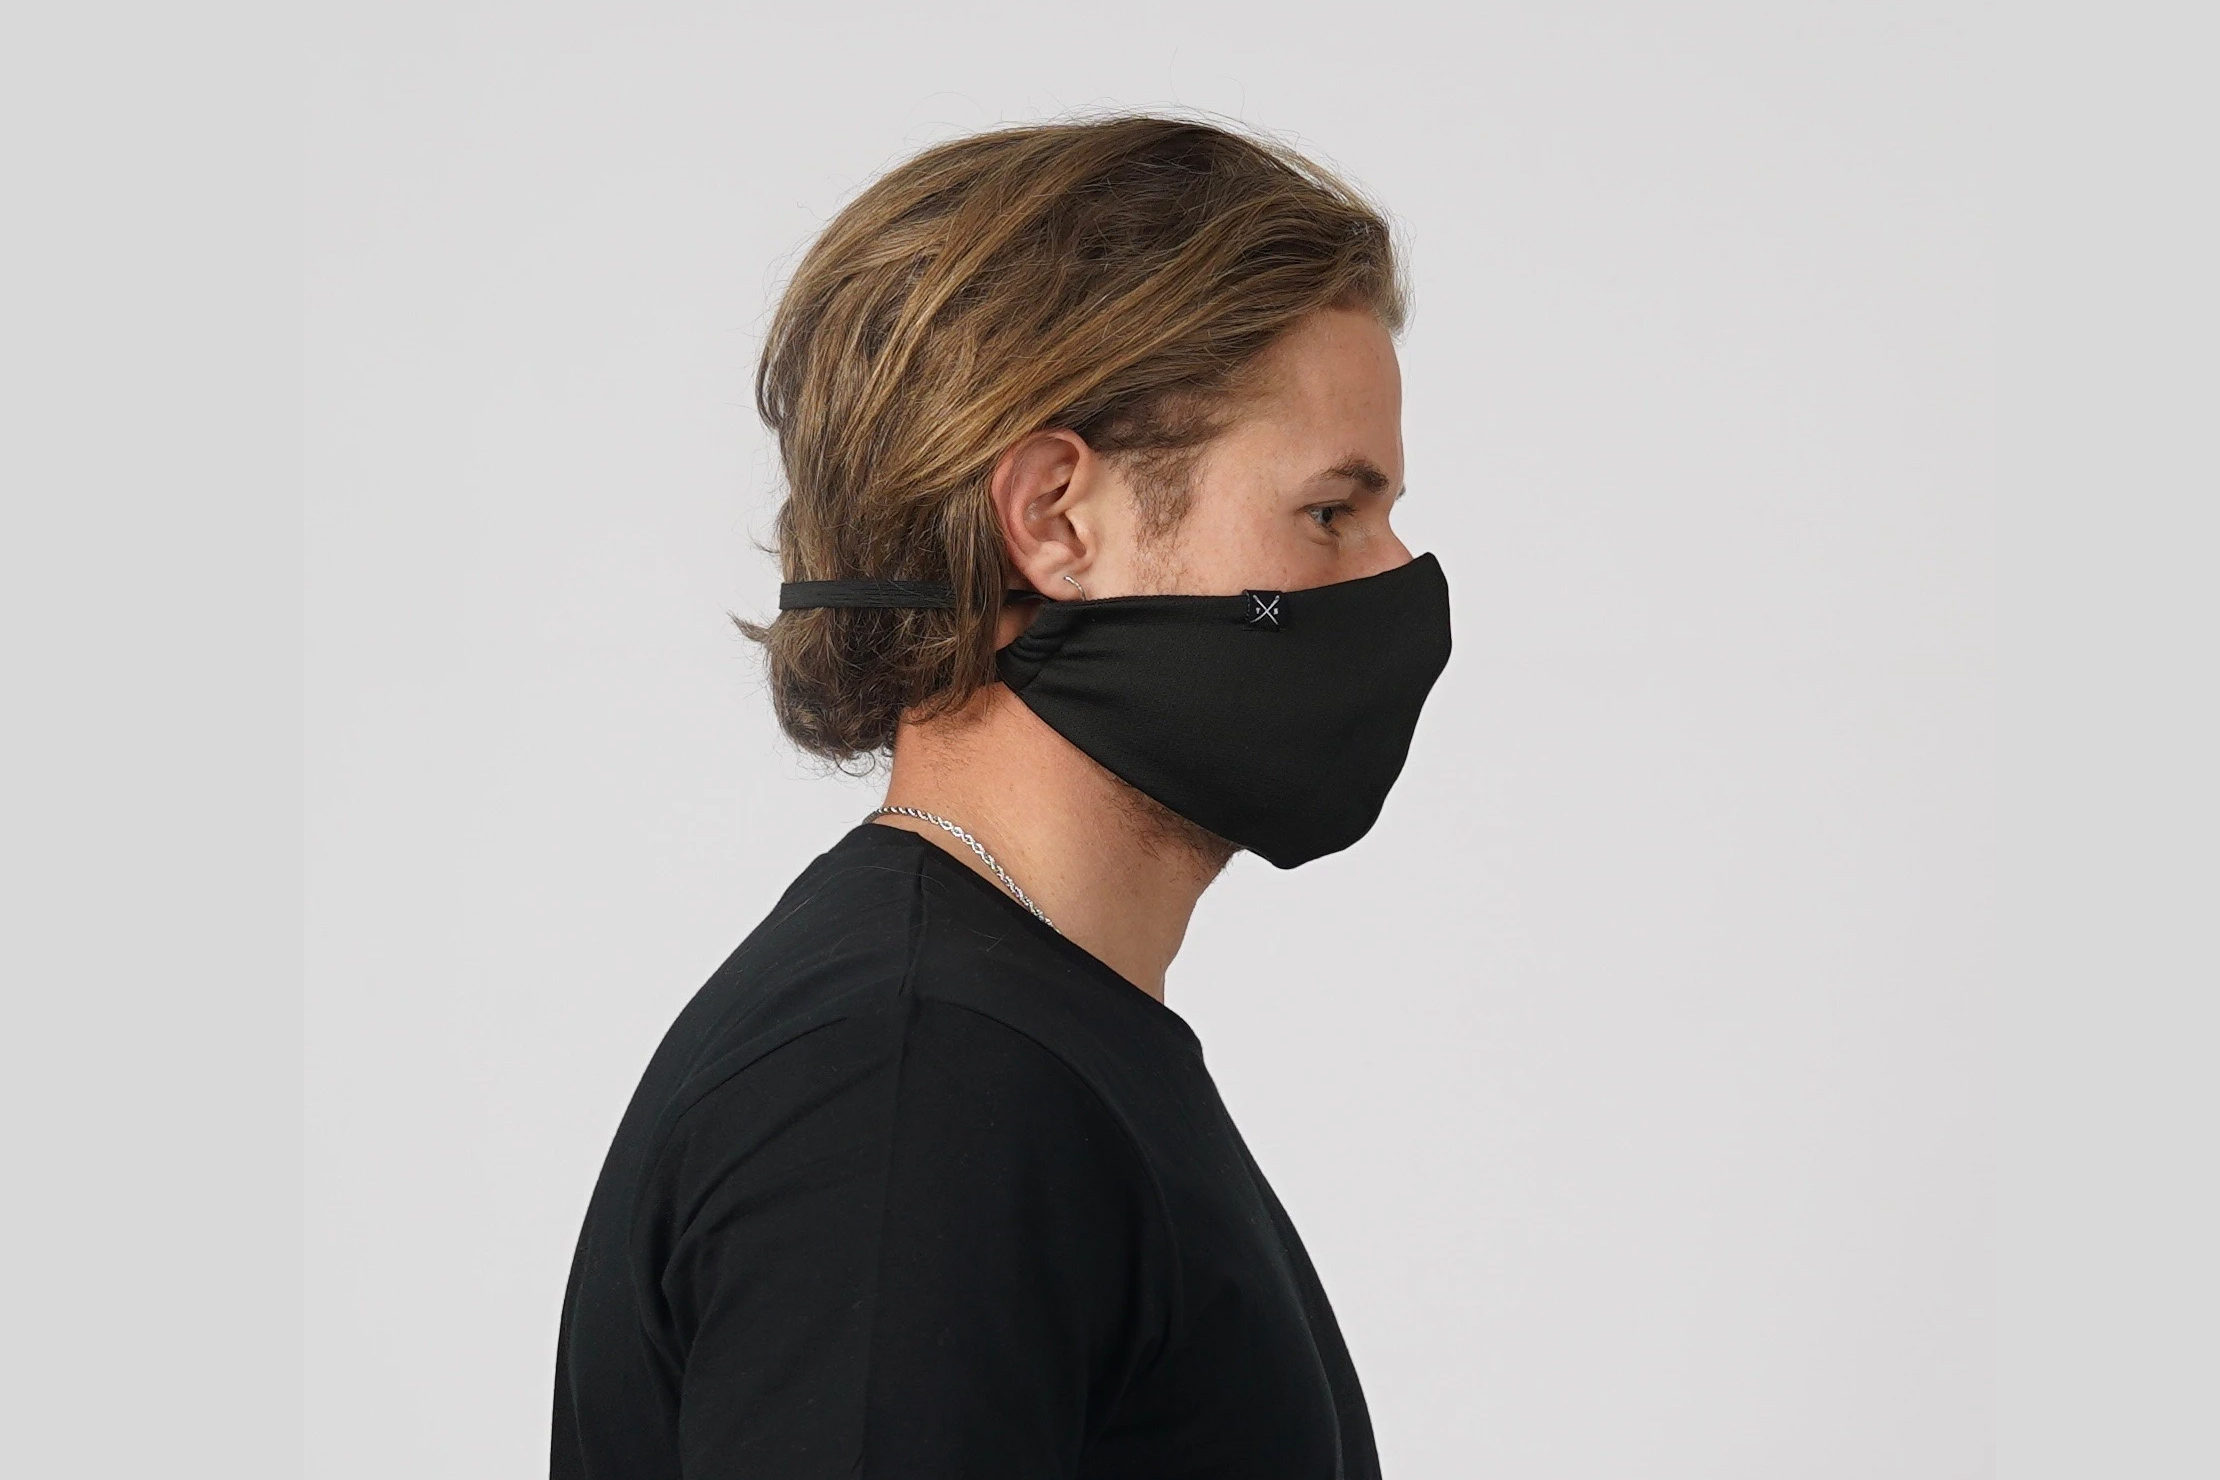 Threadsmiths Polartec PowerWool Face Mask V1.1